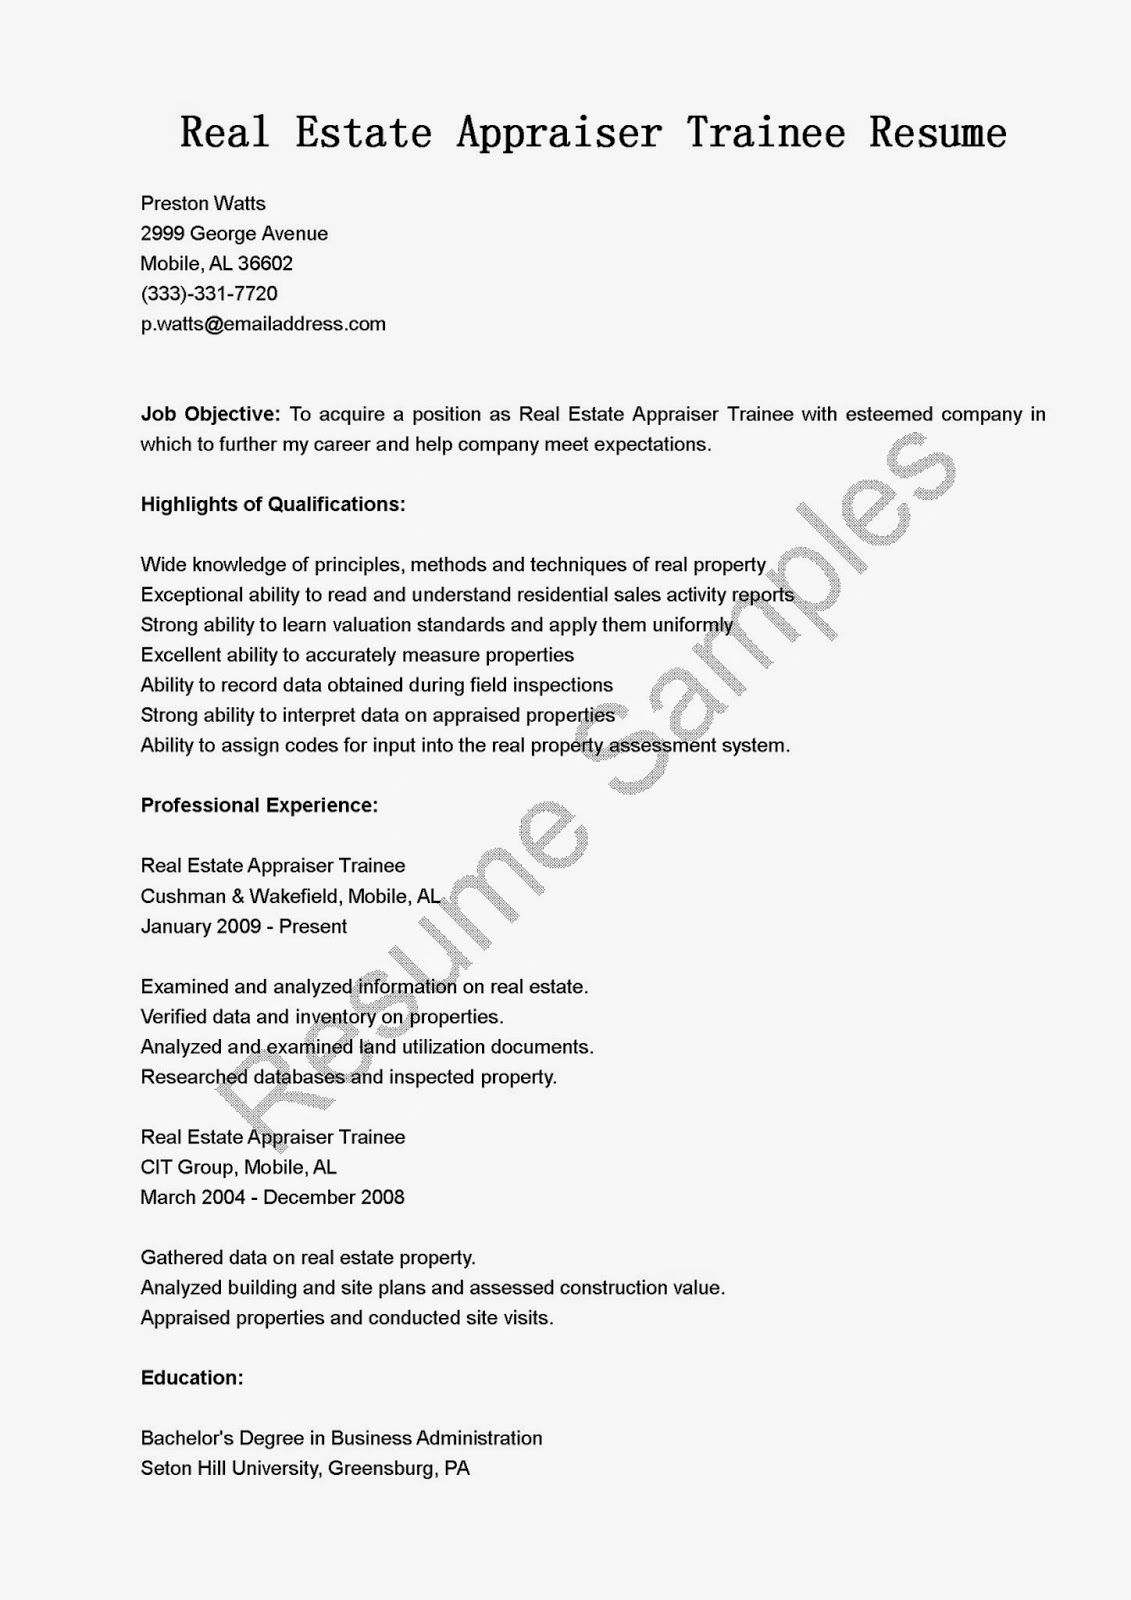 real estate appraiser trainee resume sample